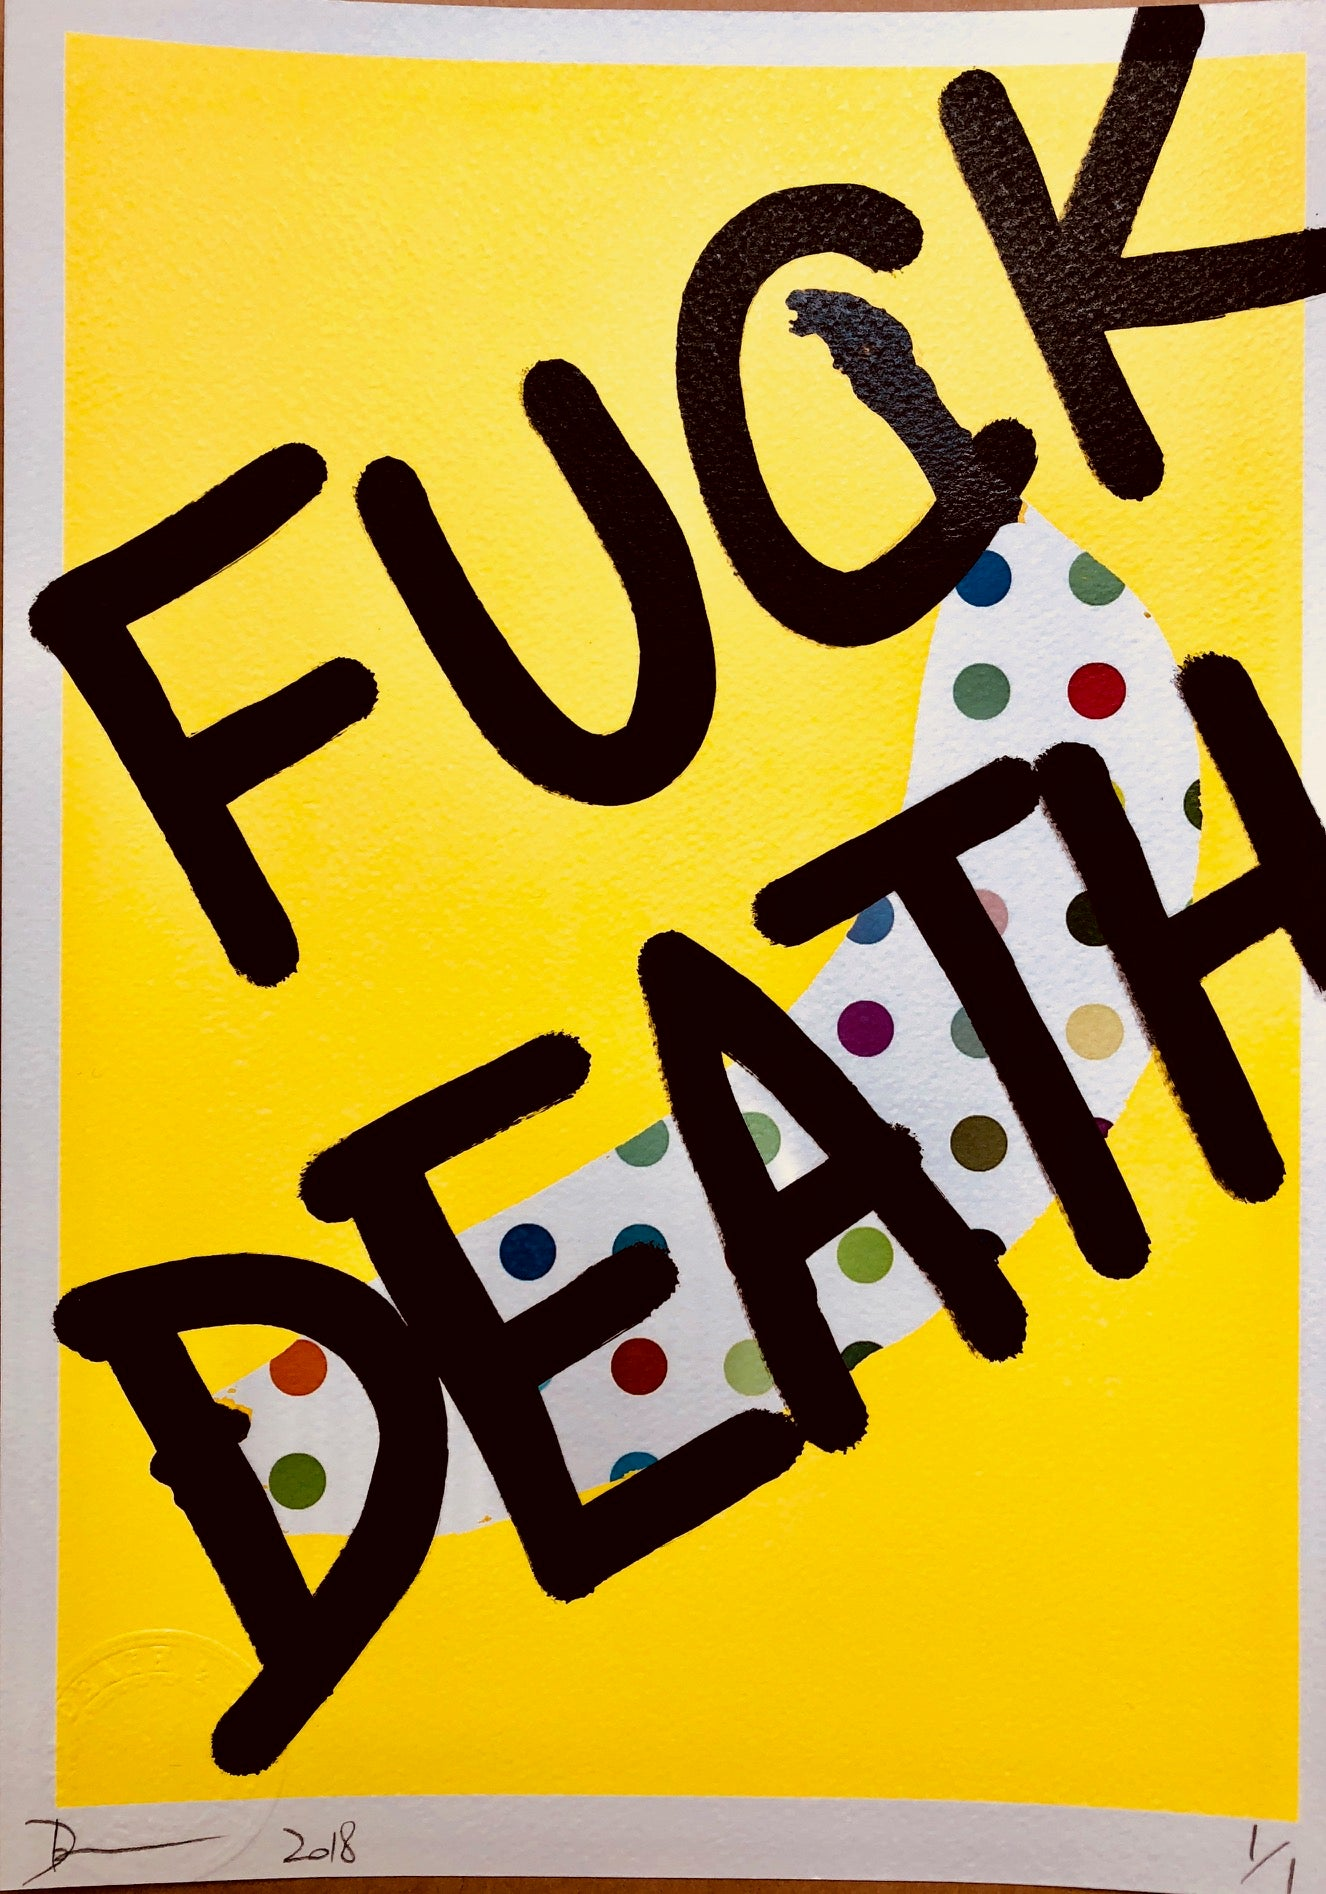 Banana FUXK DEATH 29x21cm (Edition of 1)